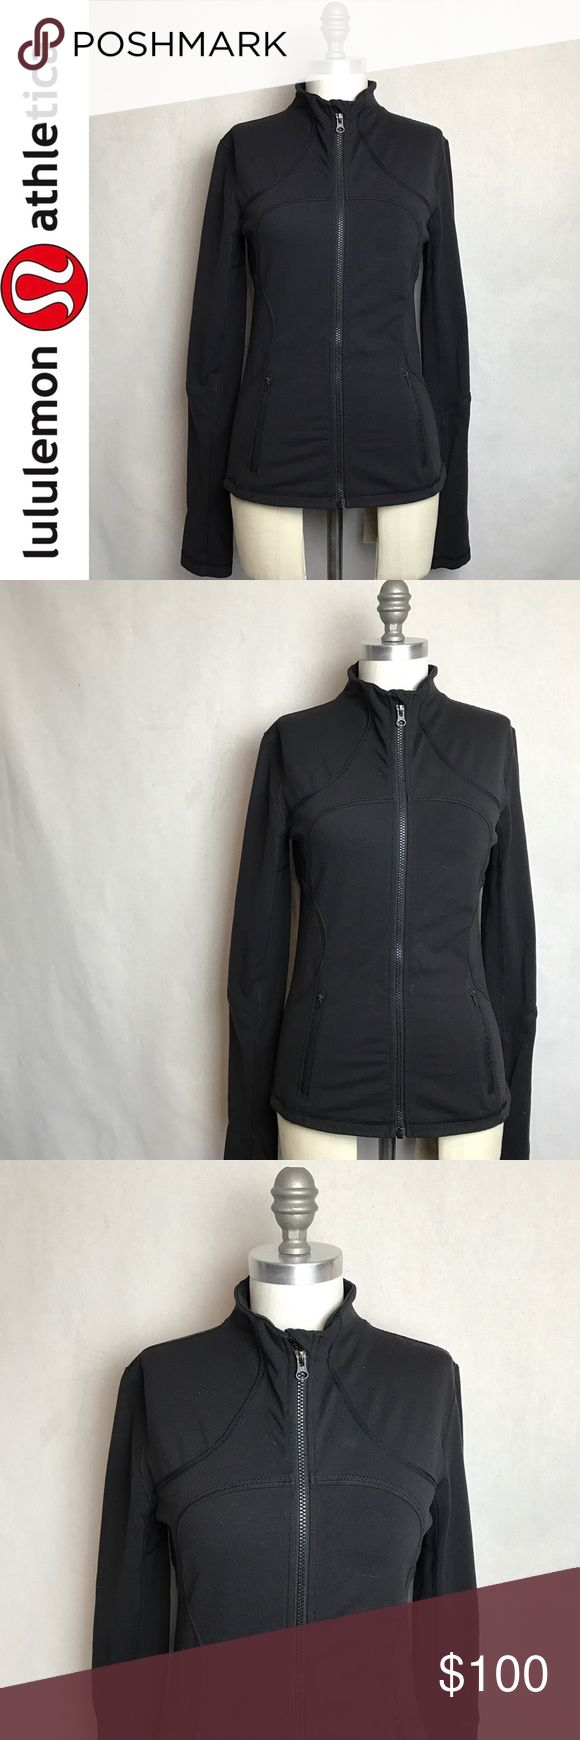 "Lululemon Black 'Define' Zip-Up Jacket Lululemon Black 'Define' Zip-Up Jacket. Approx 25"" long 16"" across the bust 28"" sleeves with thumb holes. Zip pockets in front. Mesh under the arms. Super fitted and stretchy. Gently worn and in good used condition. Light piling. Lots of wear left in this classic Lululemon athletic jacket. Size 6. Please feel free to make a reasonable offer! lululemon athletica Jackets & Coats"